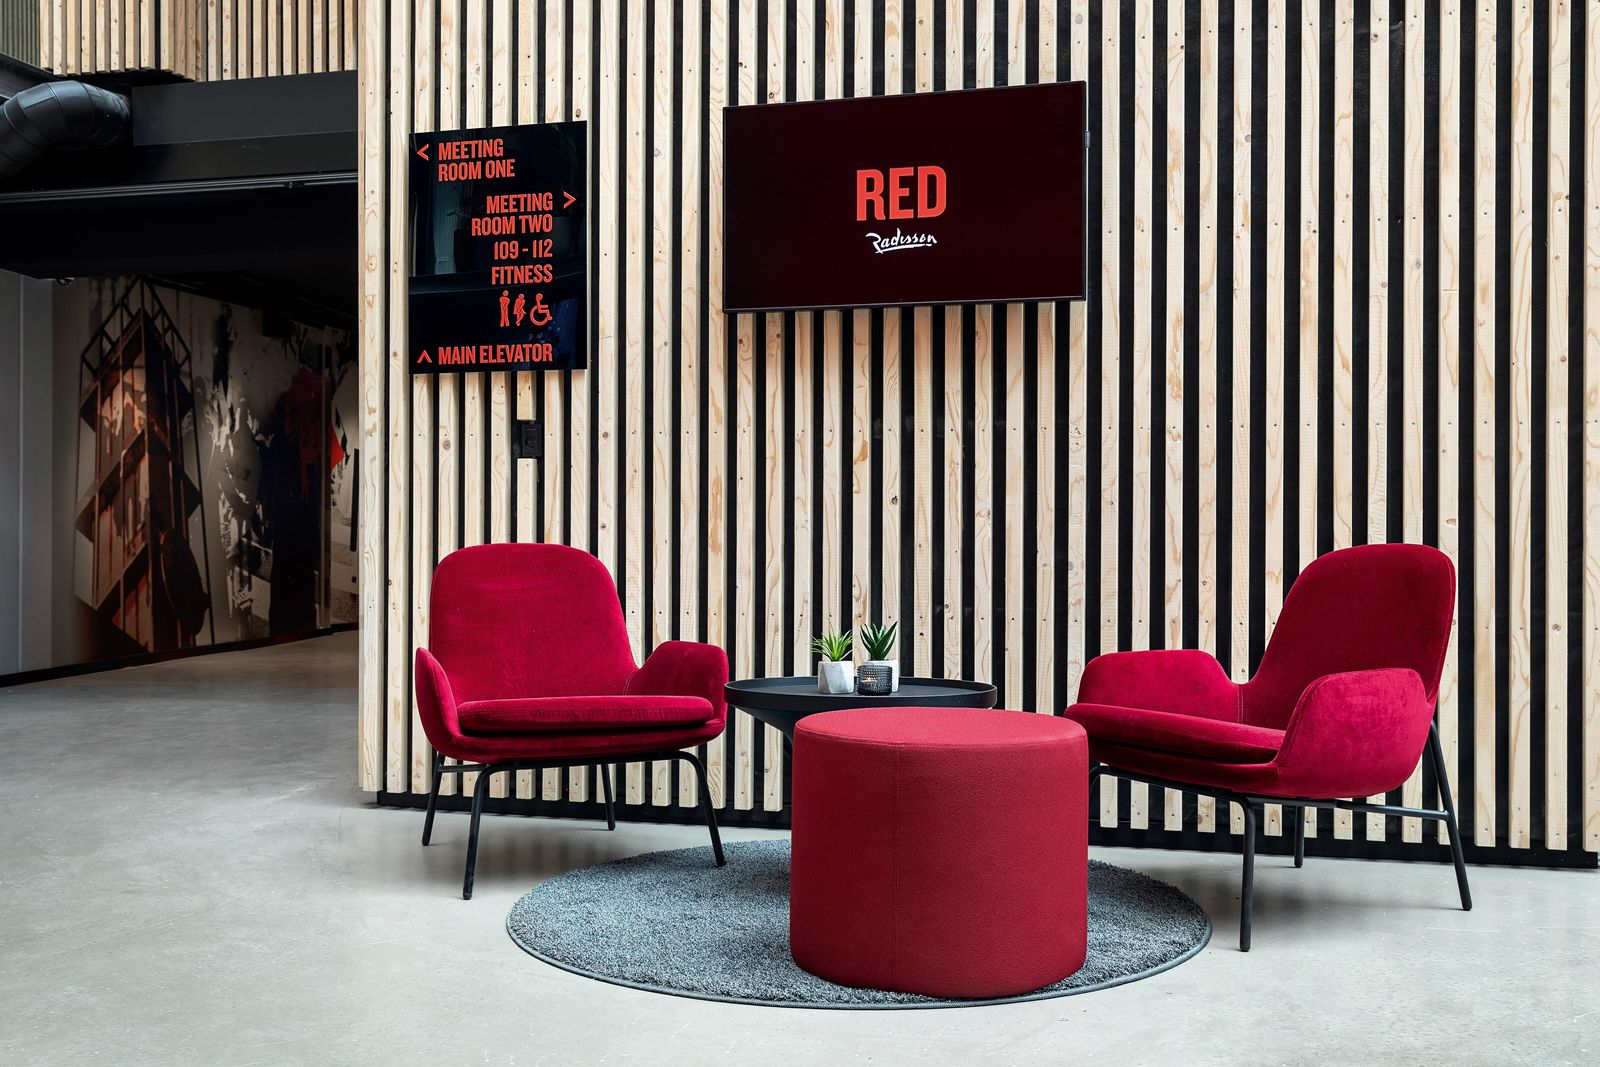 Radisson Red is one of a clutch of new design-minded hotels in the Danish city.